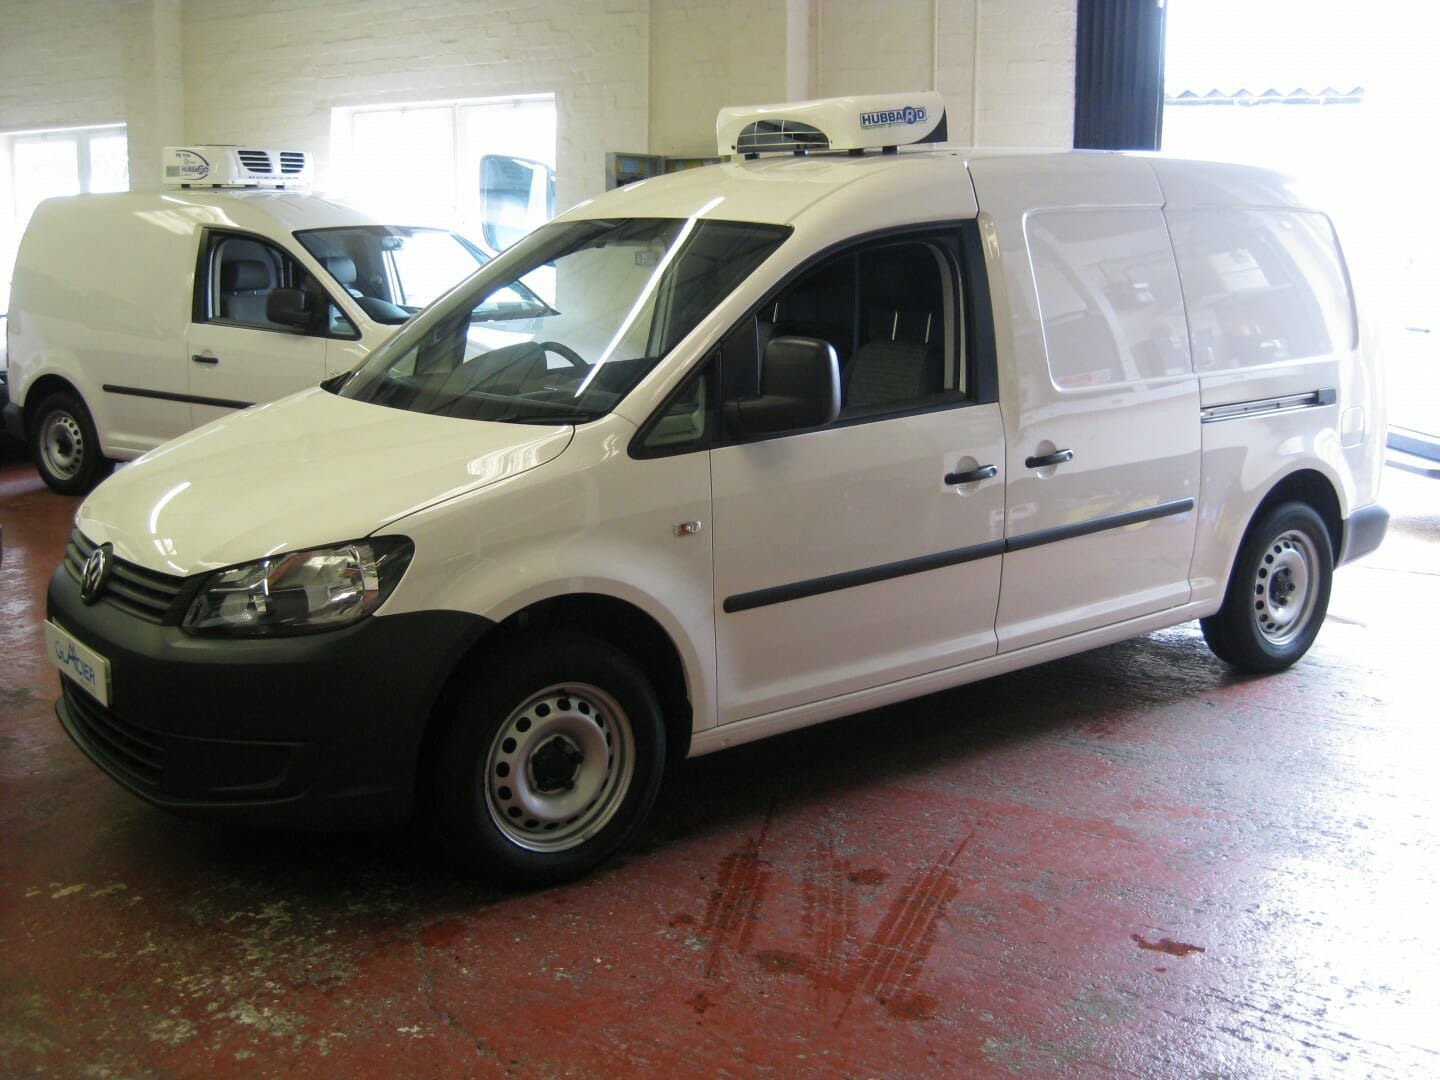 New Volkswagen Caddy Maxi Freezer Van For Sale